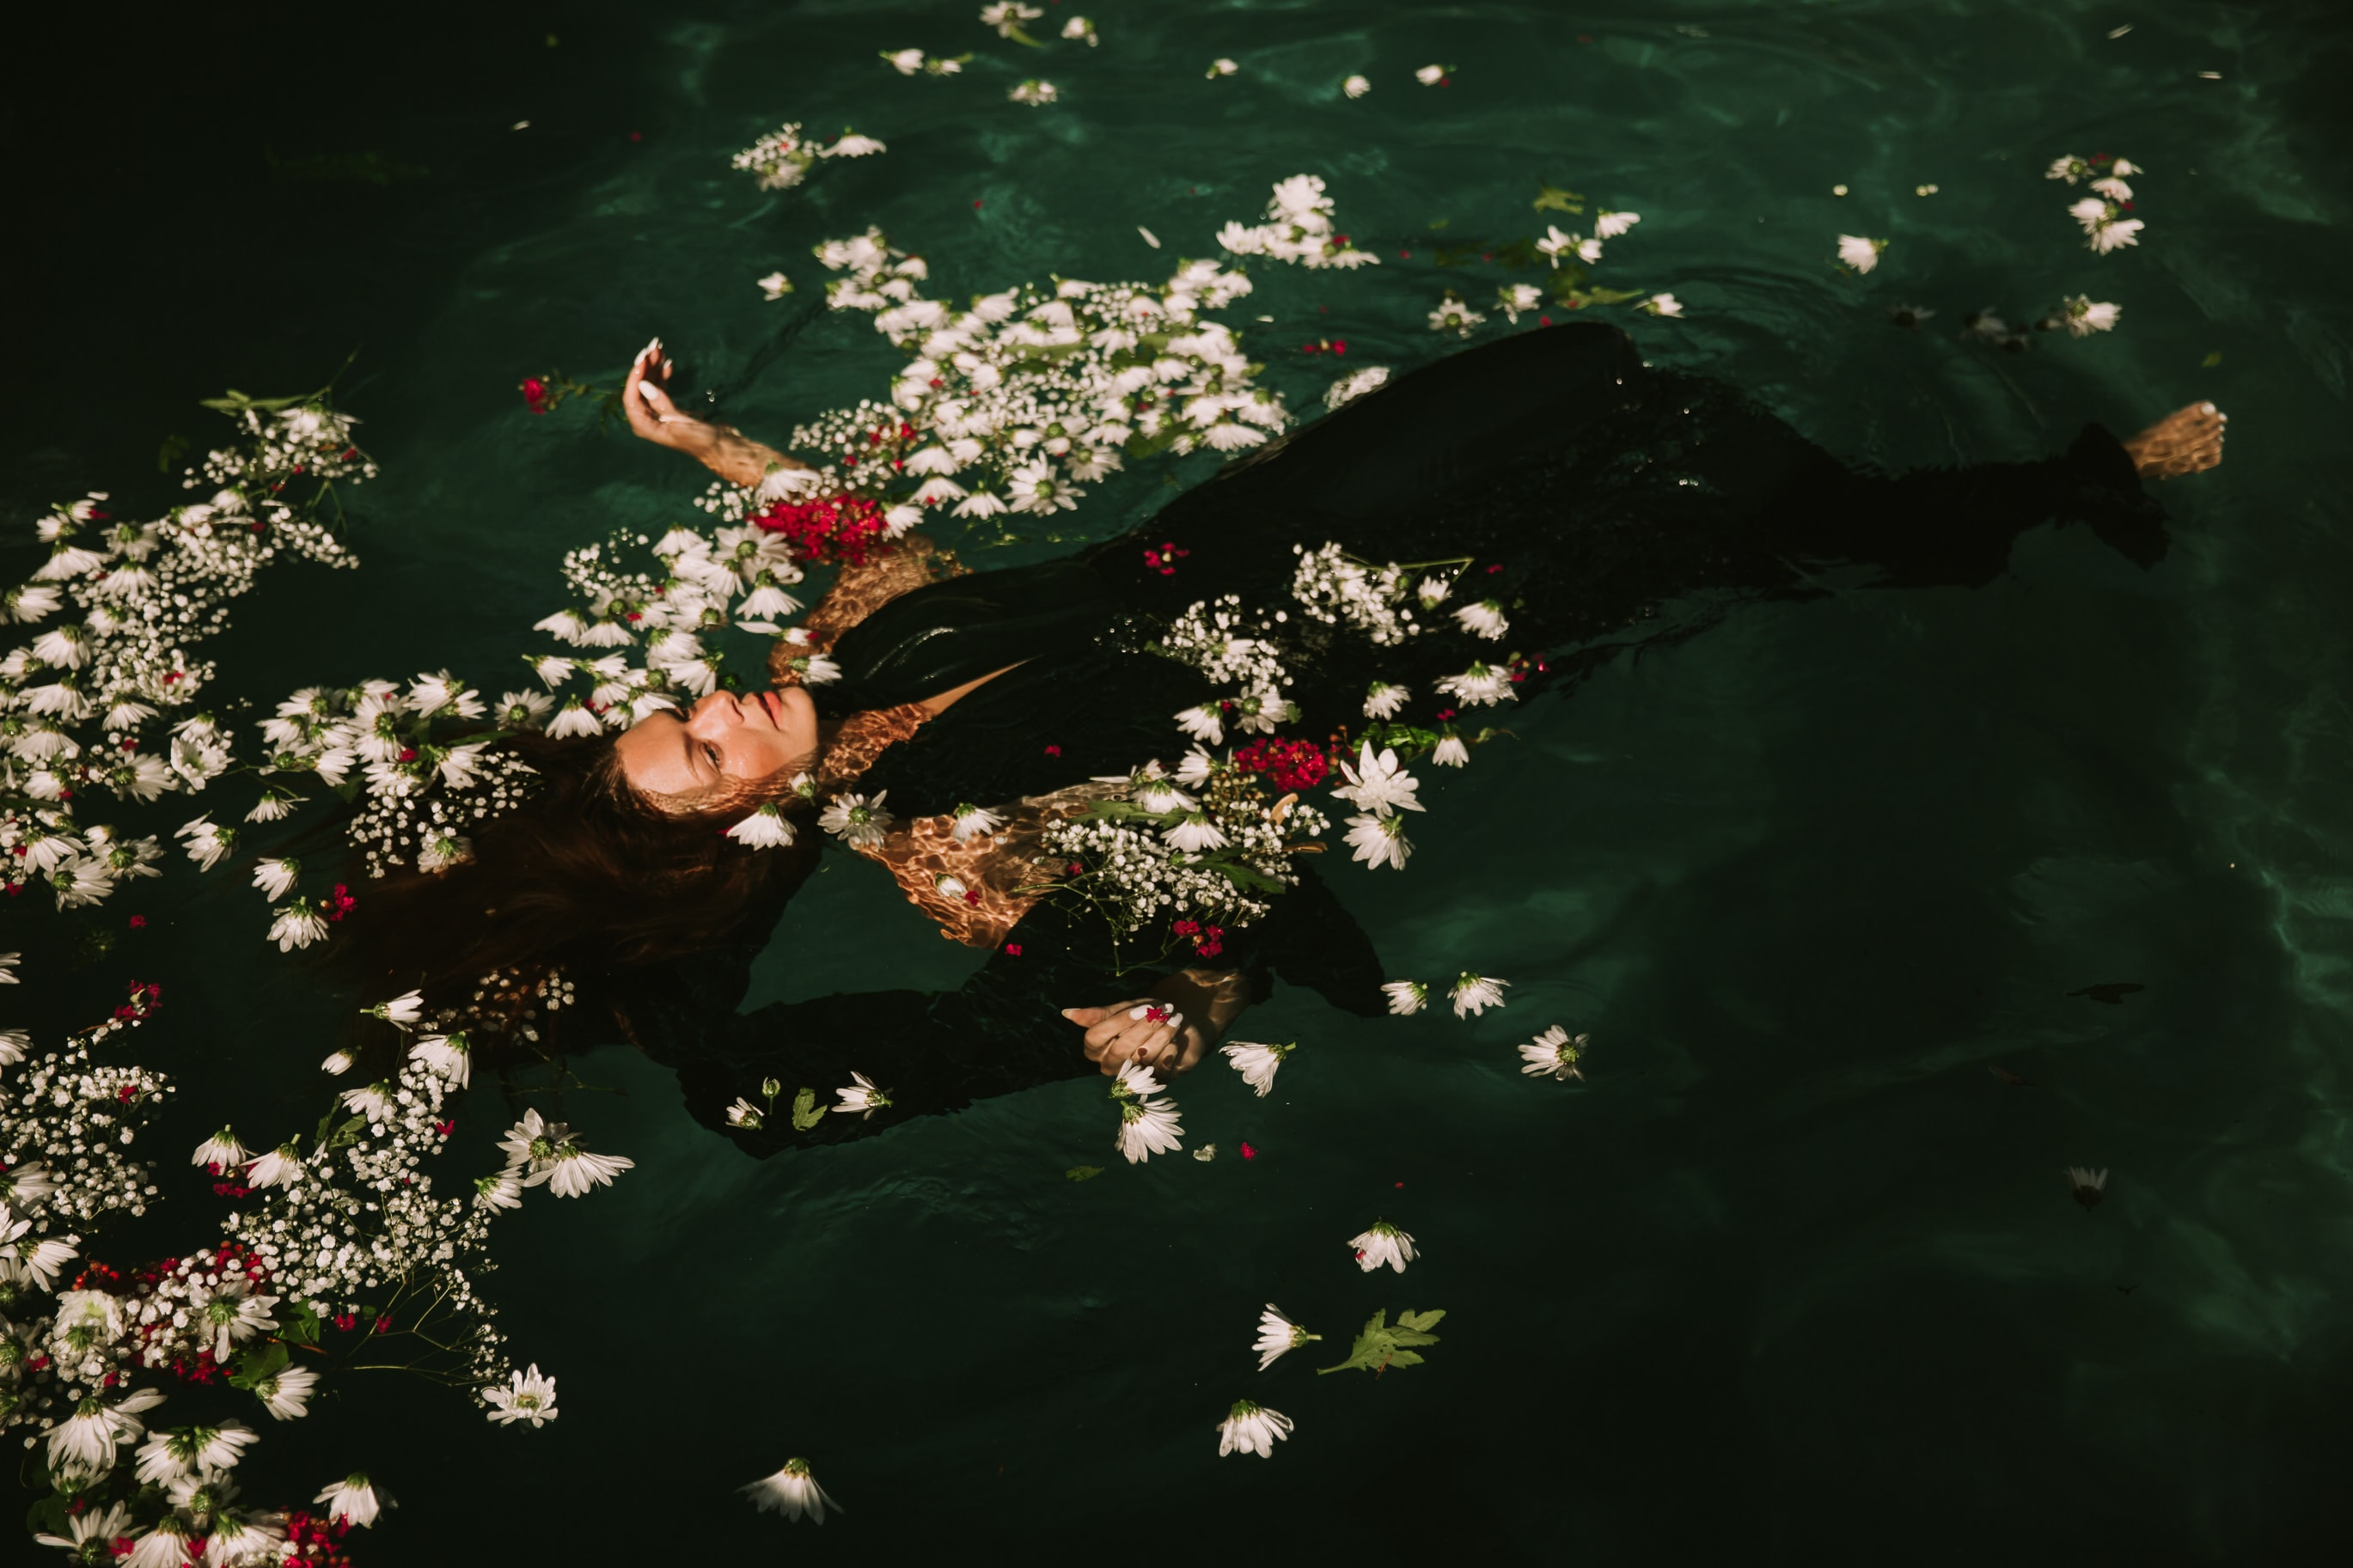 woman wearing black suit floats on the water